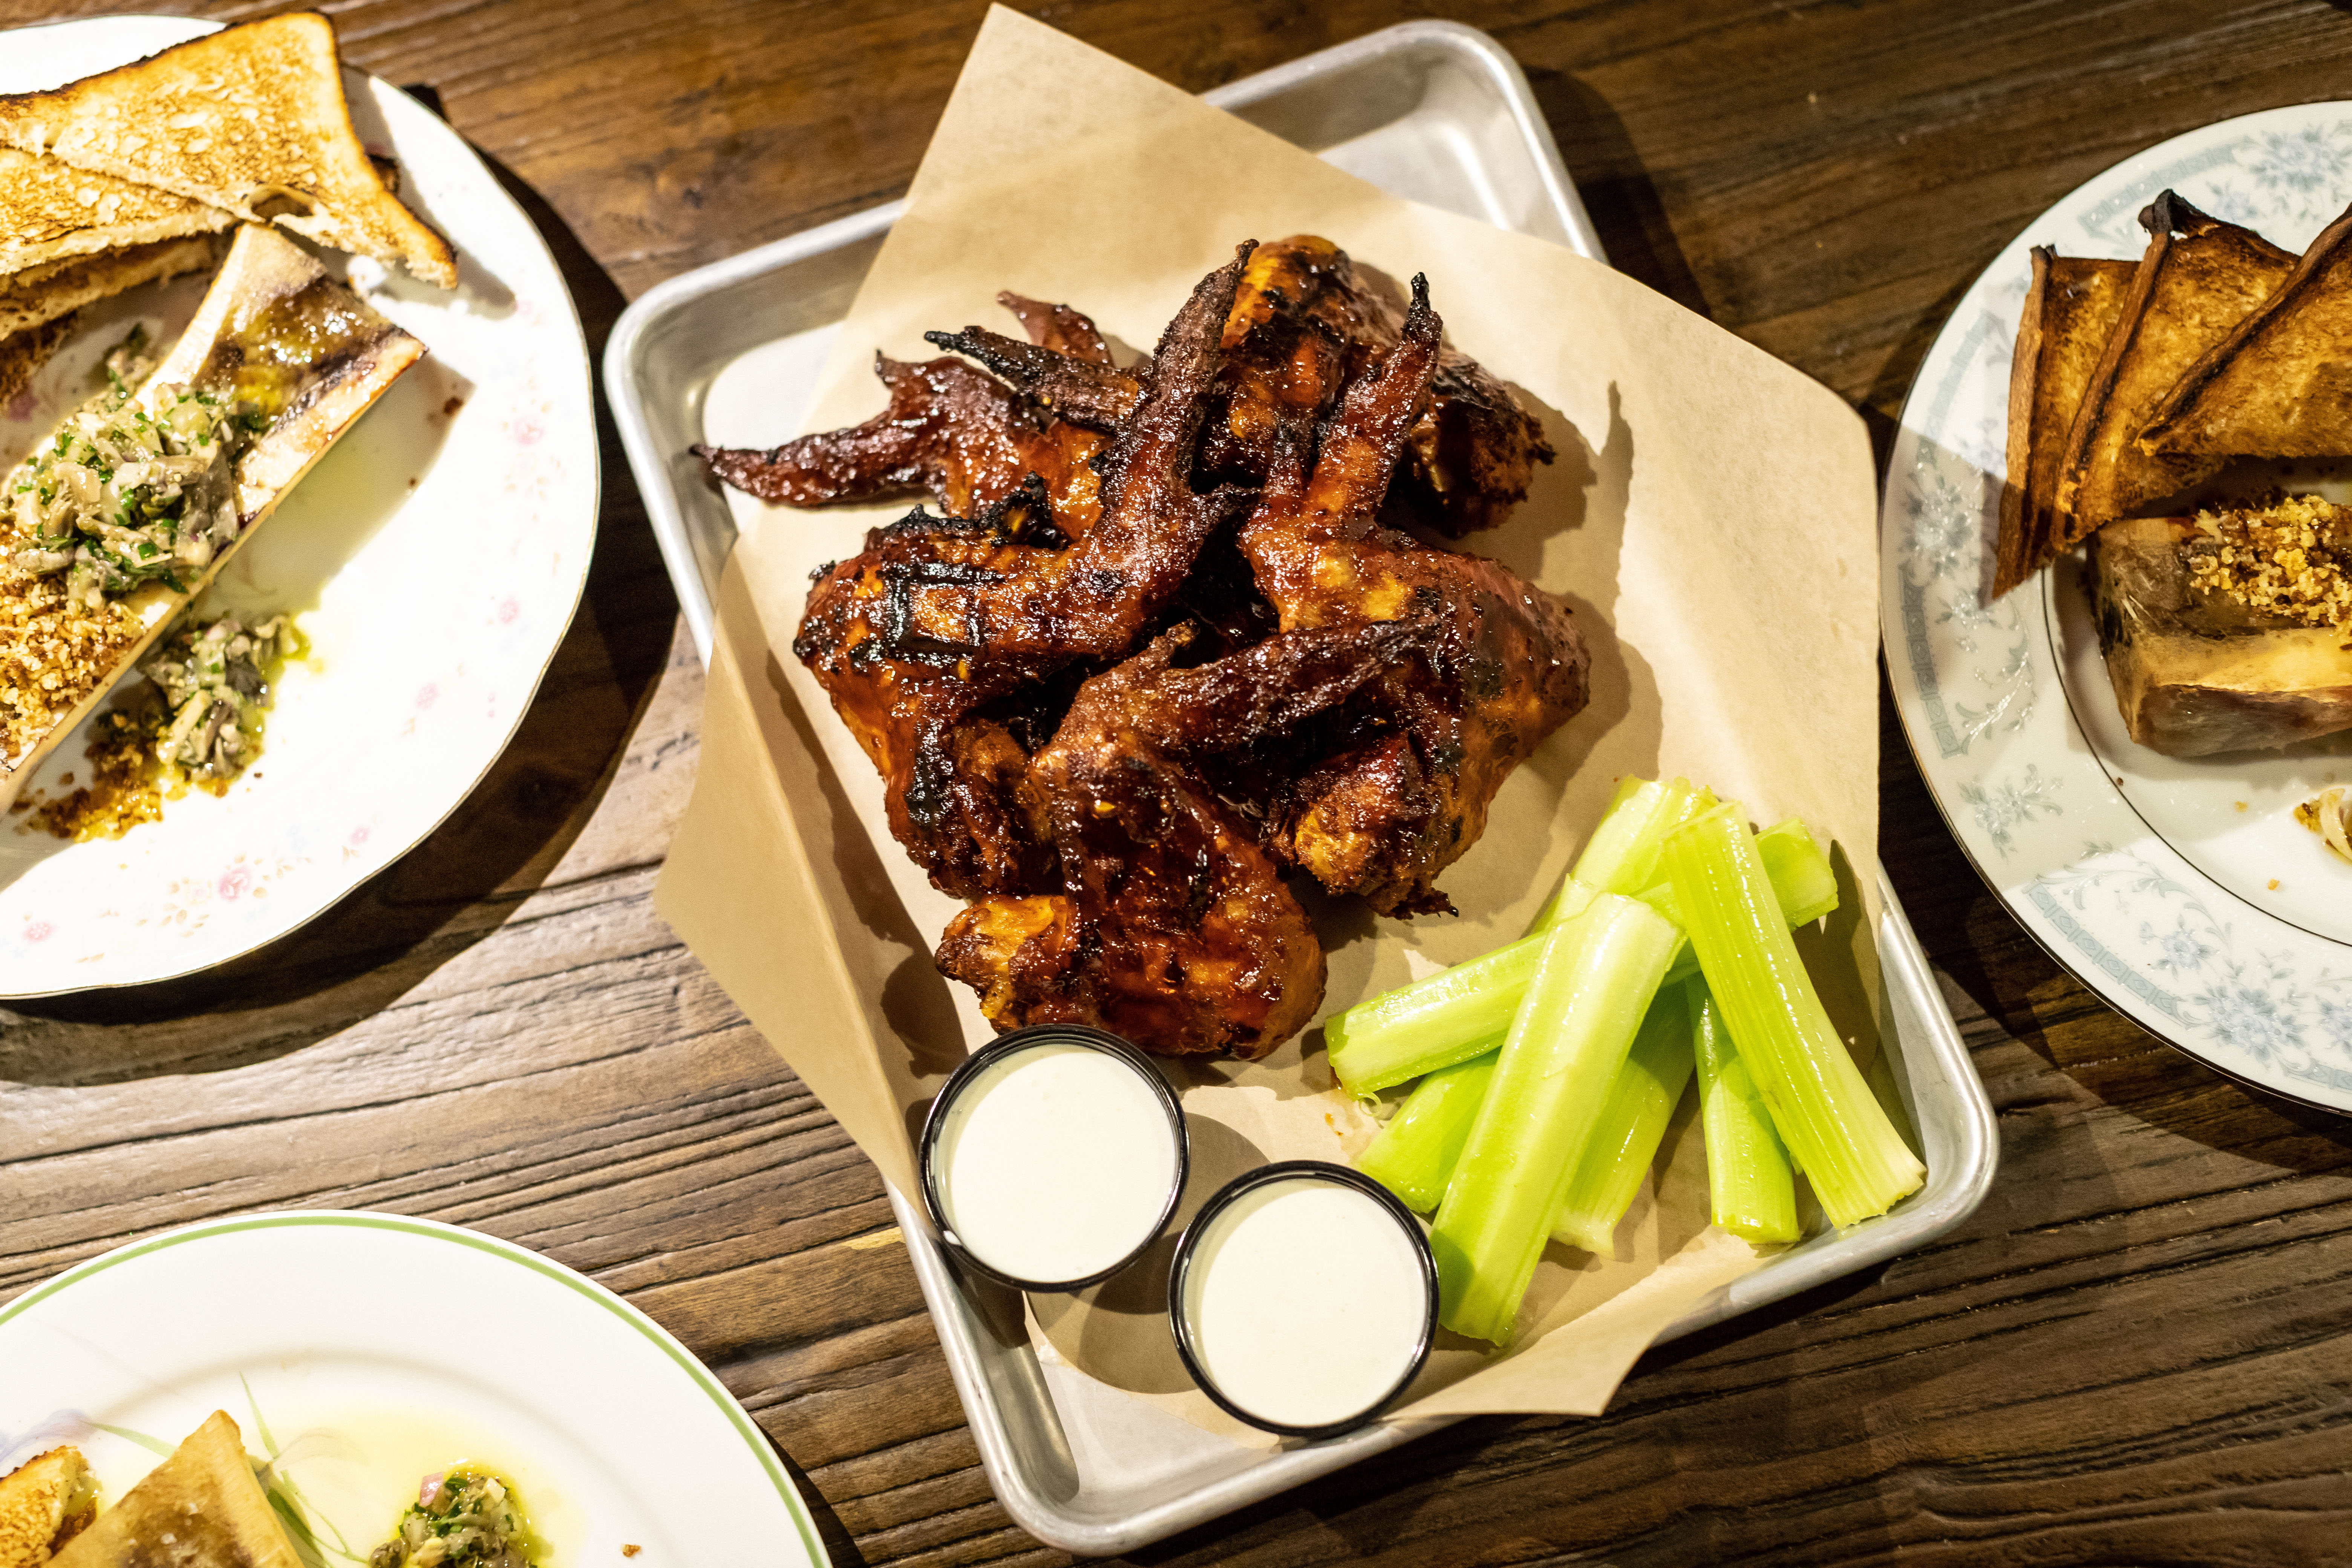 The famouse smoked wings at Von Ebert Brewing. (image courtesy of Von Ebert Brewing)